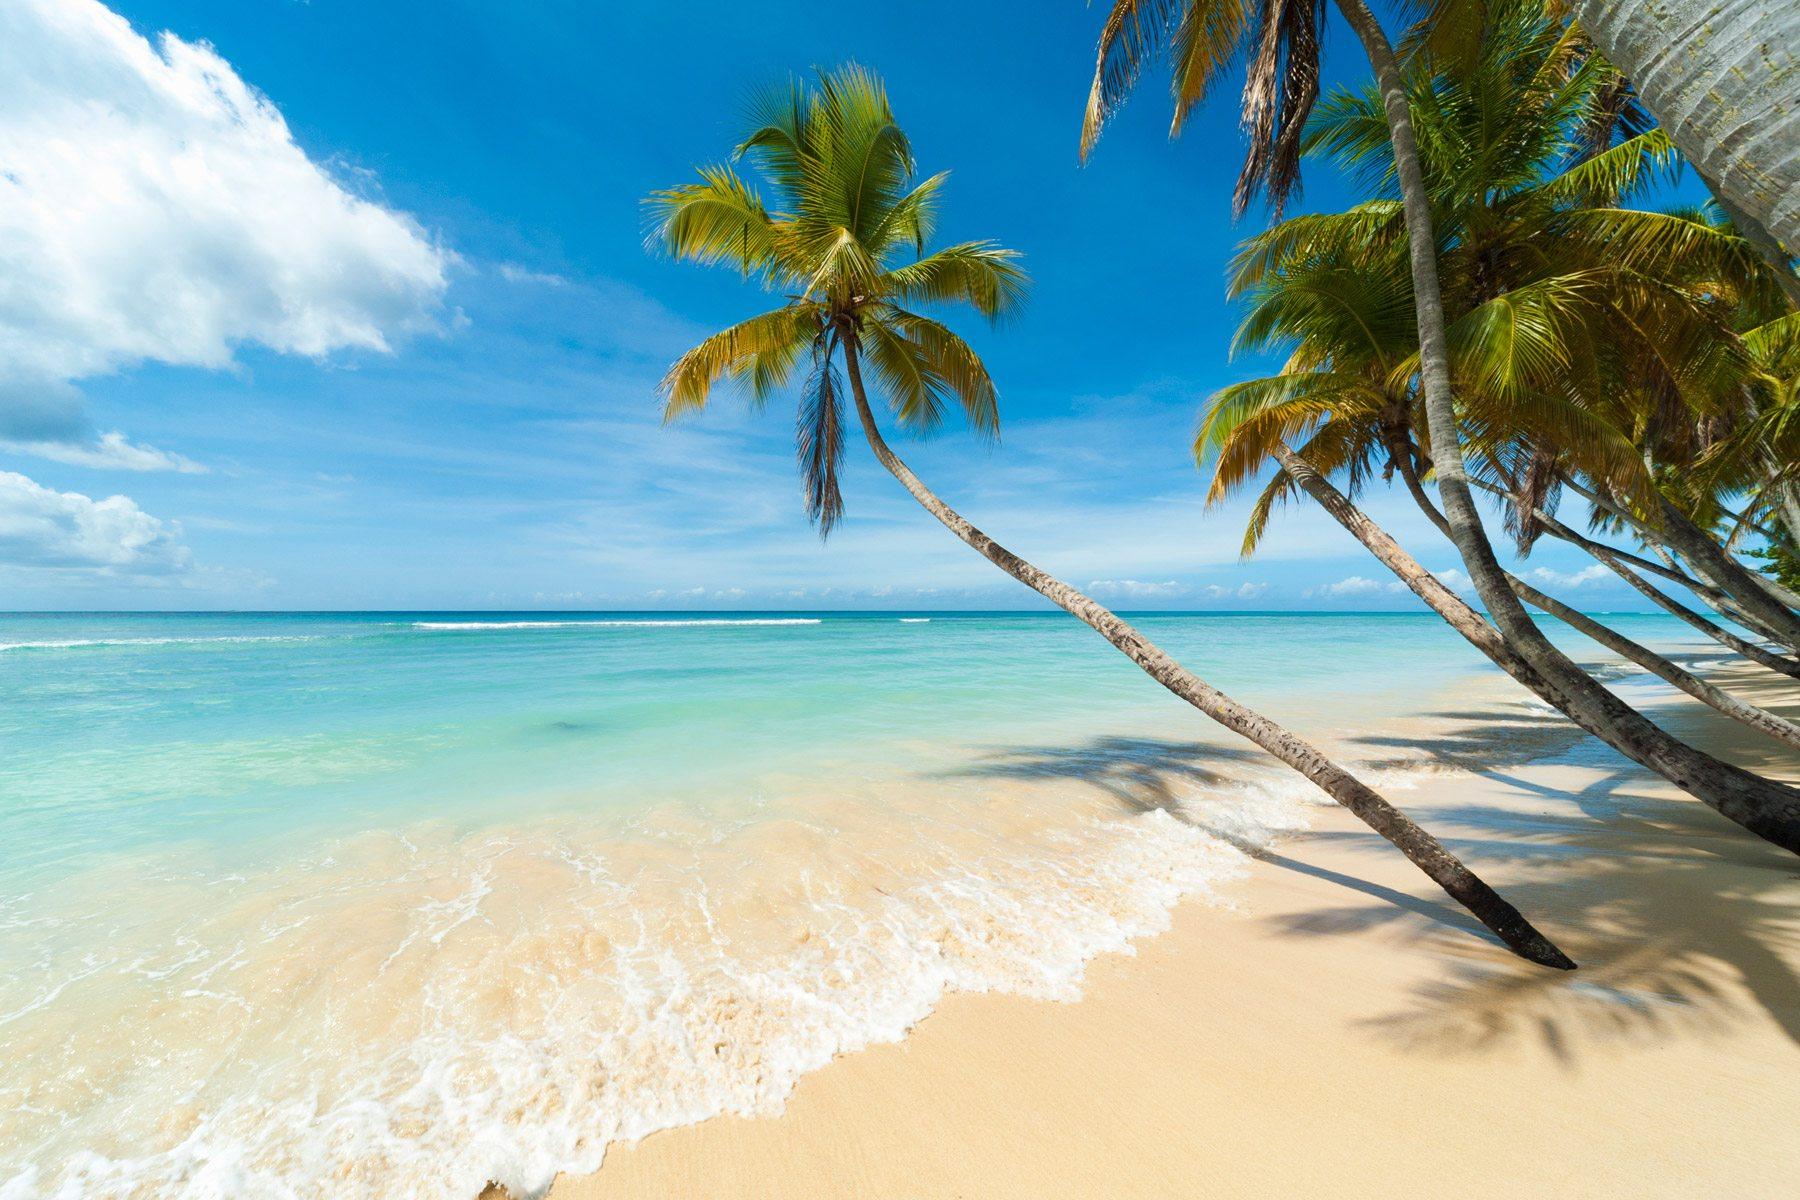 Amazing Caribbean Beach Scenery in HD